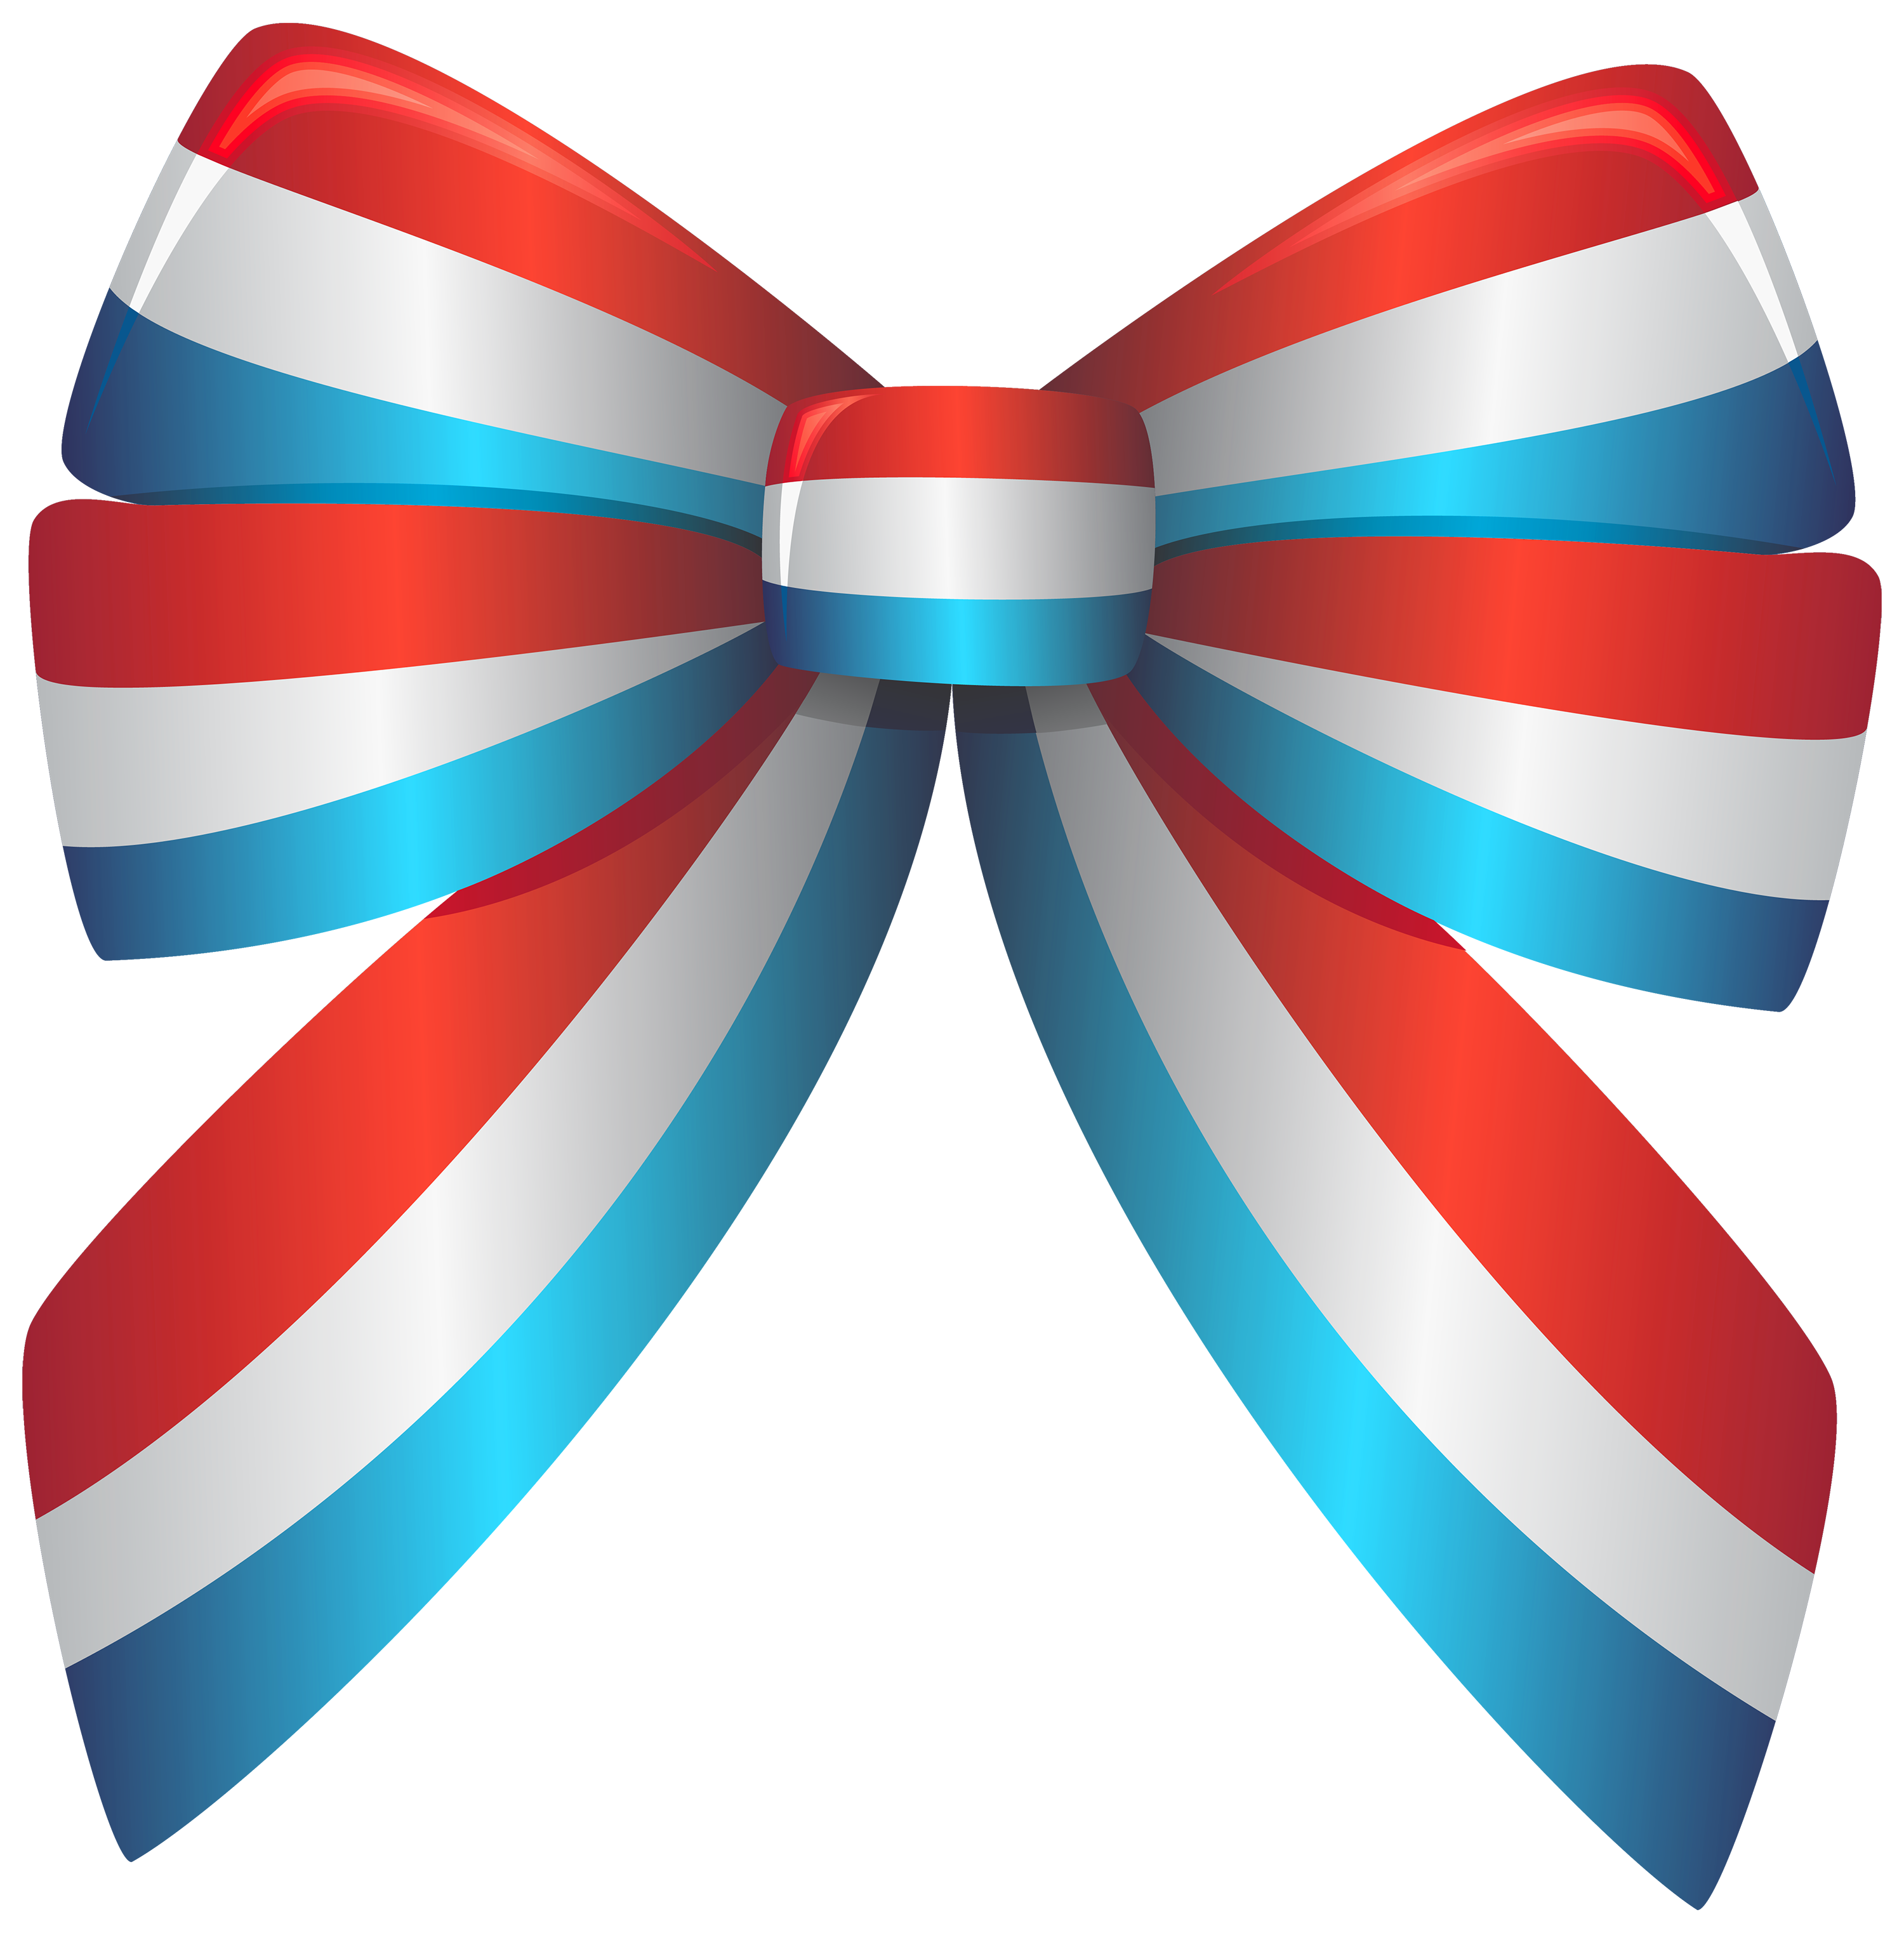 American clipart ribbon. Red white and blue